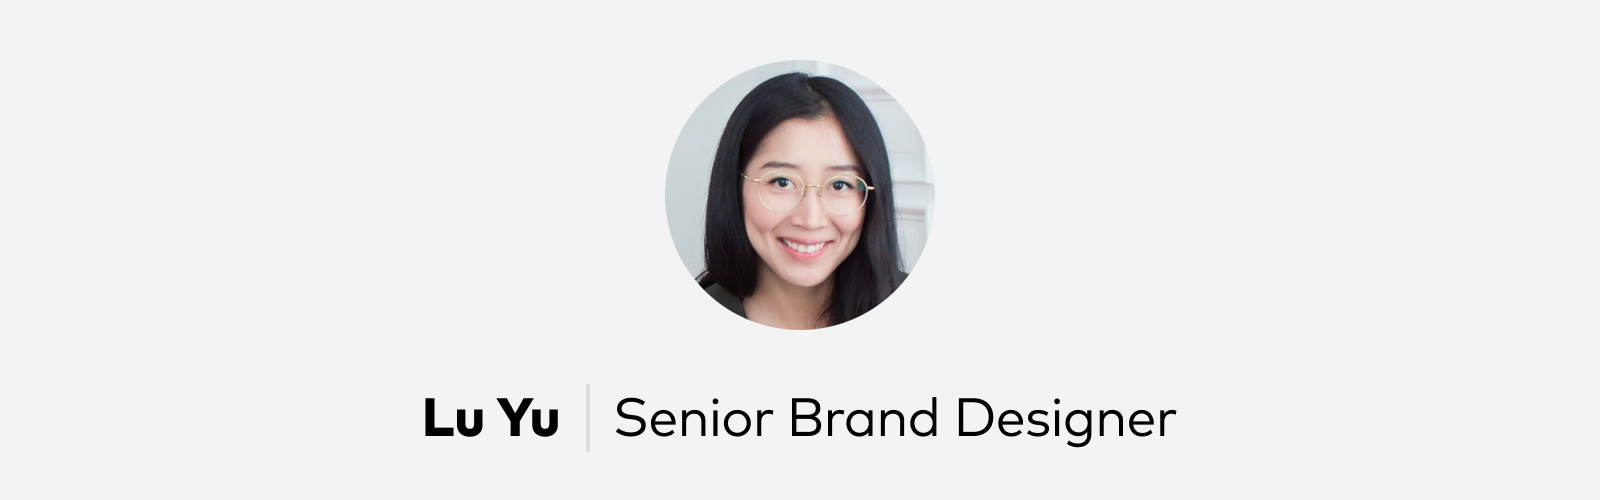 Lu Yu Senior Brand Designer Pitch